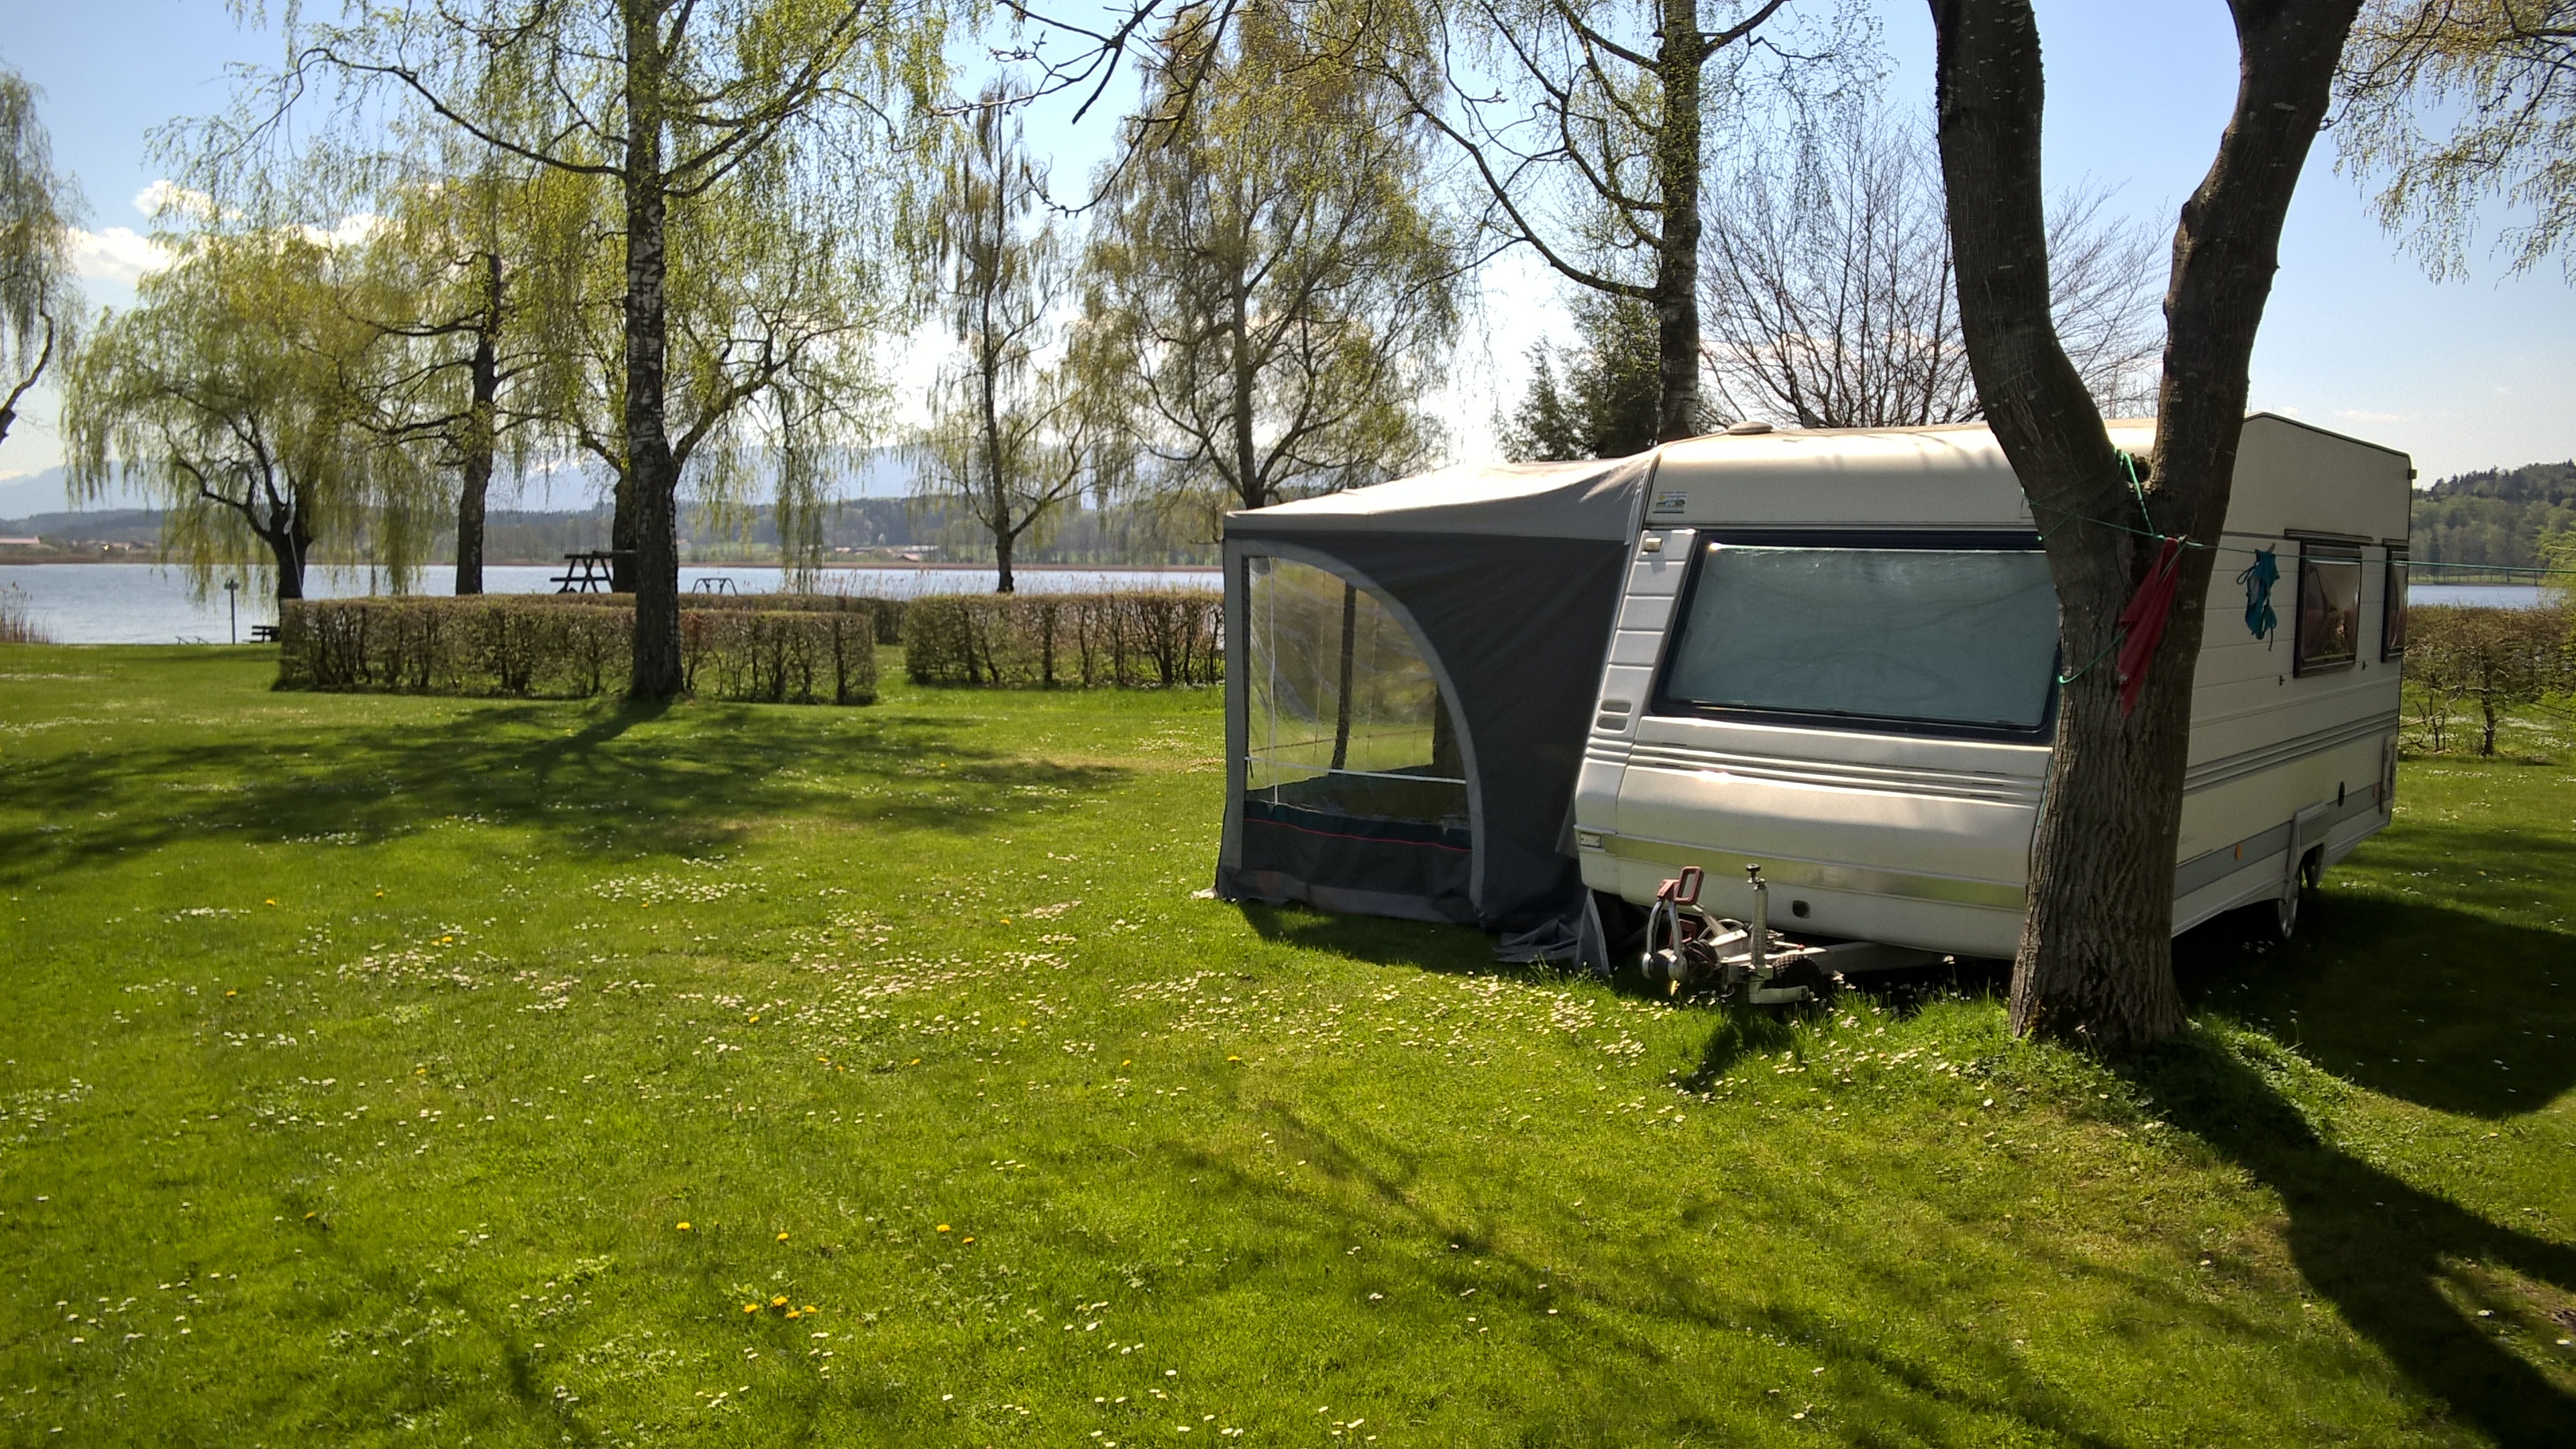 wohnwagen wiesespitz campingplatz stadler am waginger see. Black Bedroom Furniture Sets. Home Design Ideas